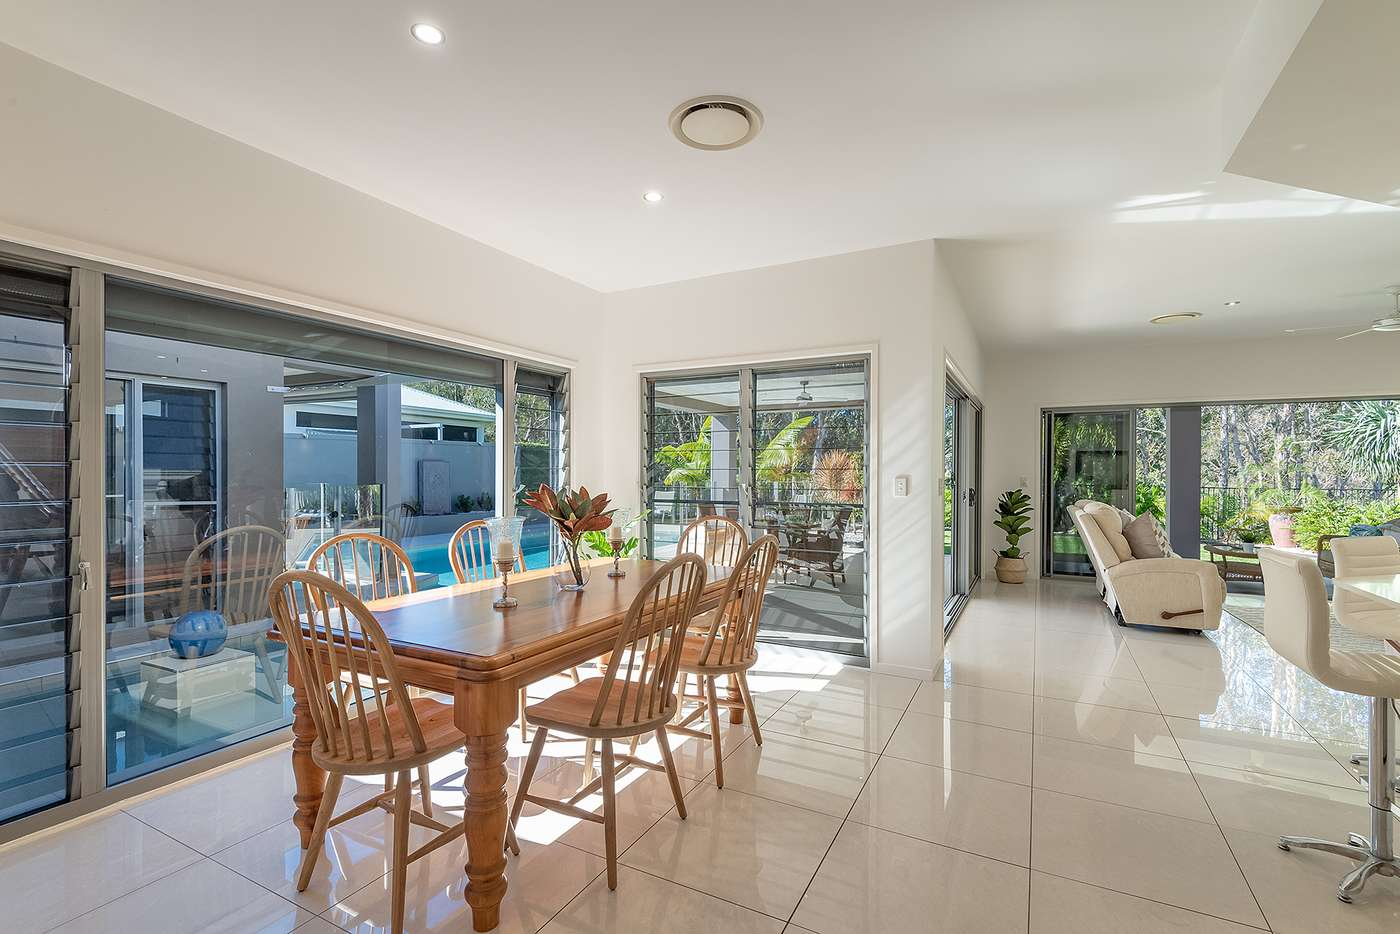 Fifth view of Homely house listing, 27 Hetherington Dr, Twin Waters QLD 4564